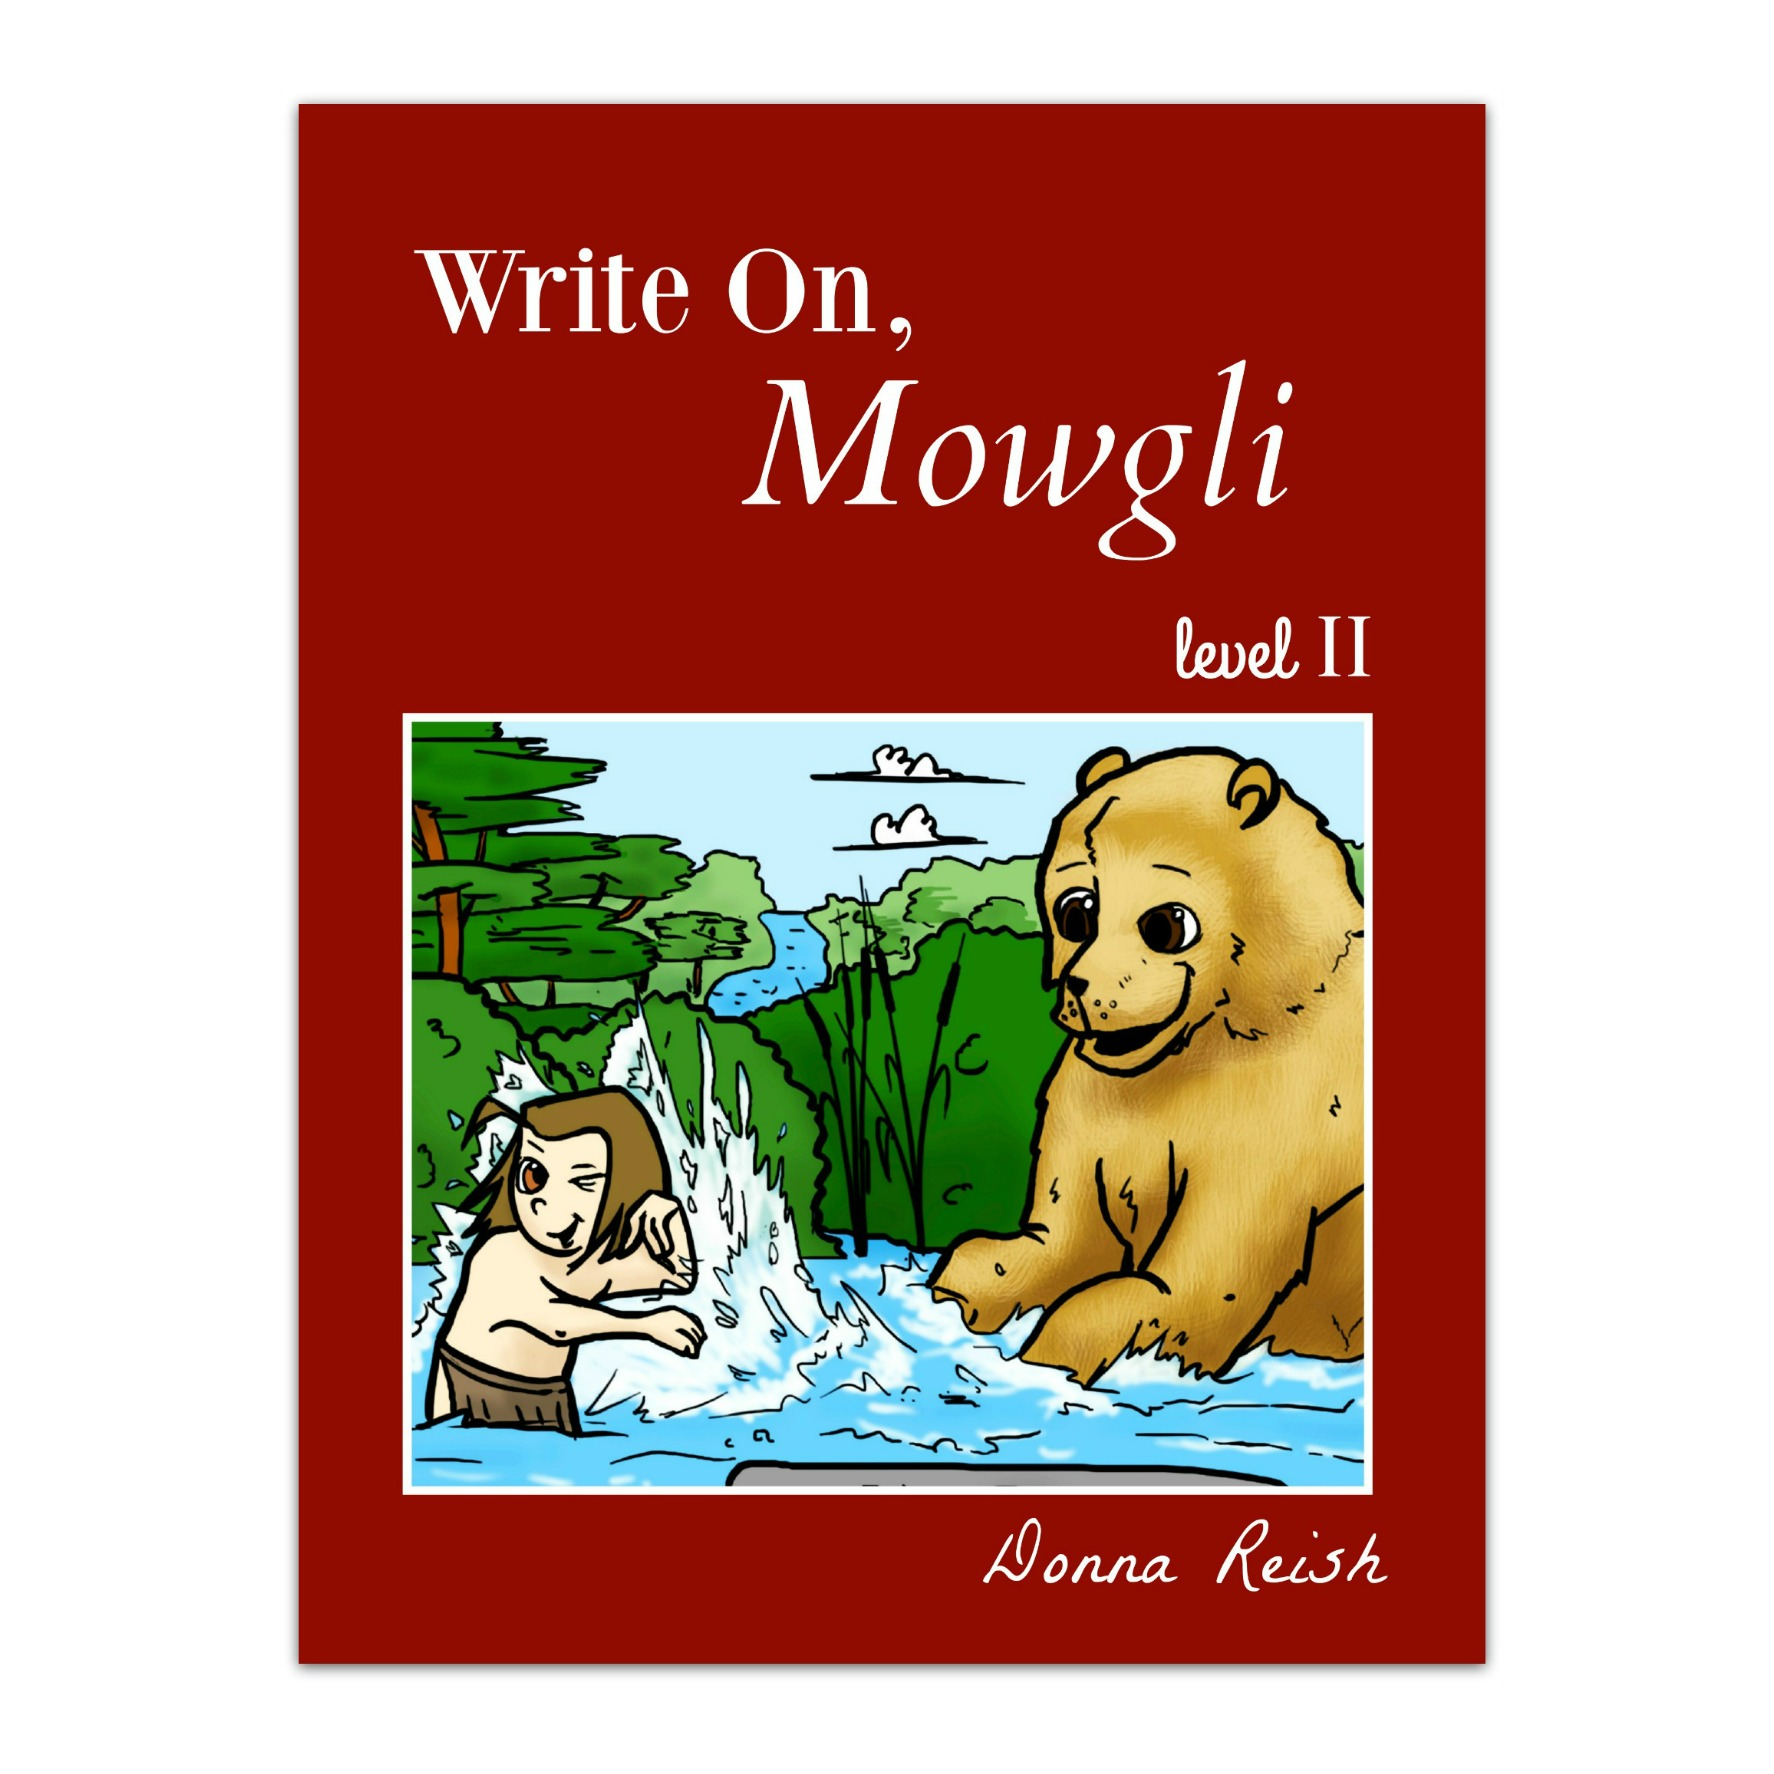 Write On Mowgli Level II